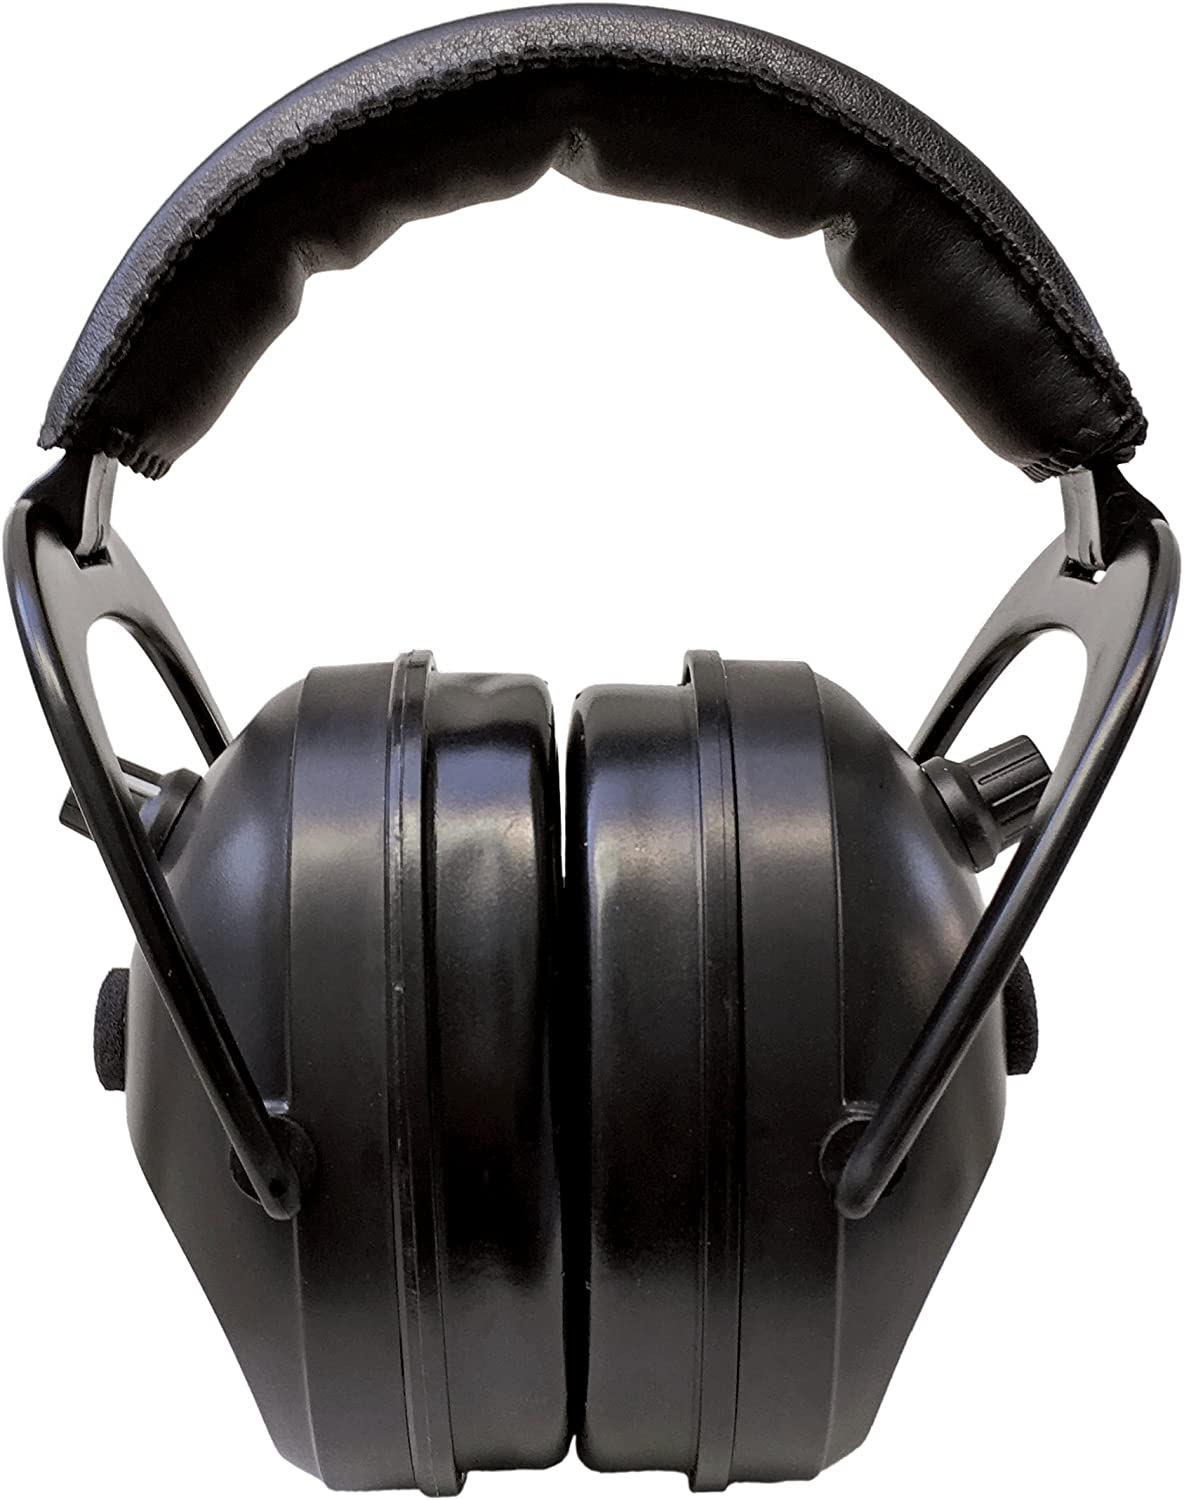 HORMONES – Gold II 26 - Electronic Hearing Protection & Amplification - Shooting Earmuff - NRR 26 - Electronic Hearing Protector Muffs